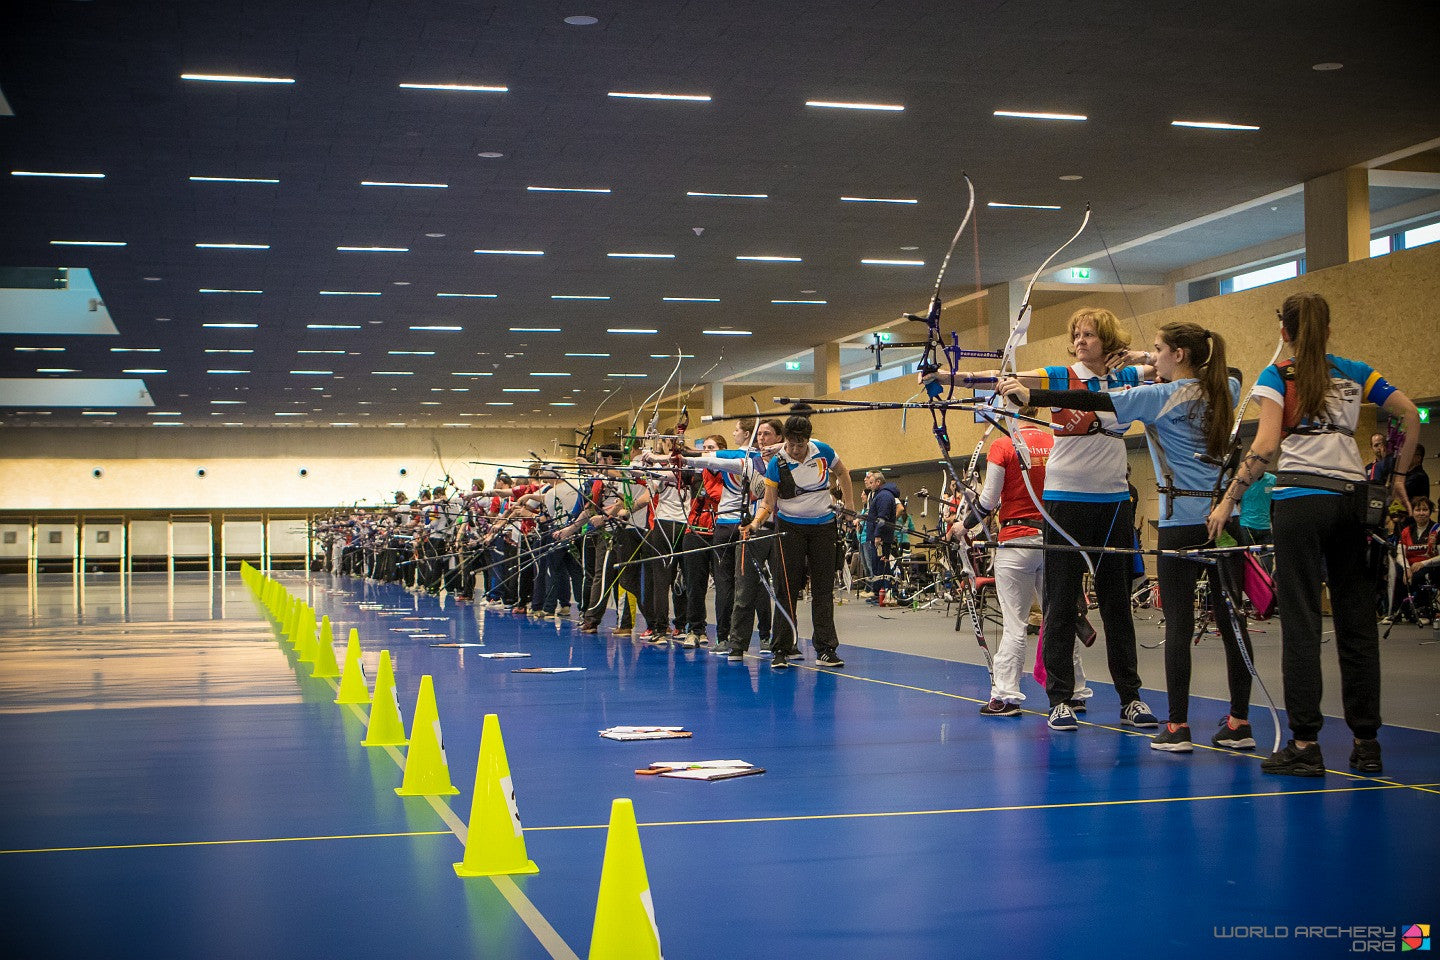 Archery's new State-of-the-art Facility